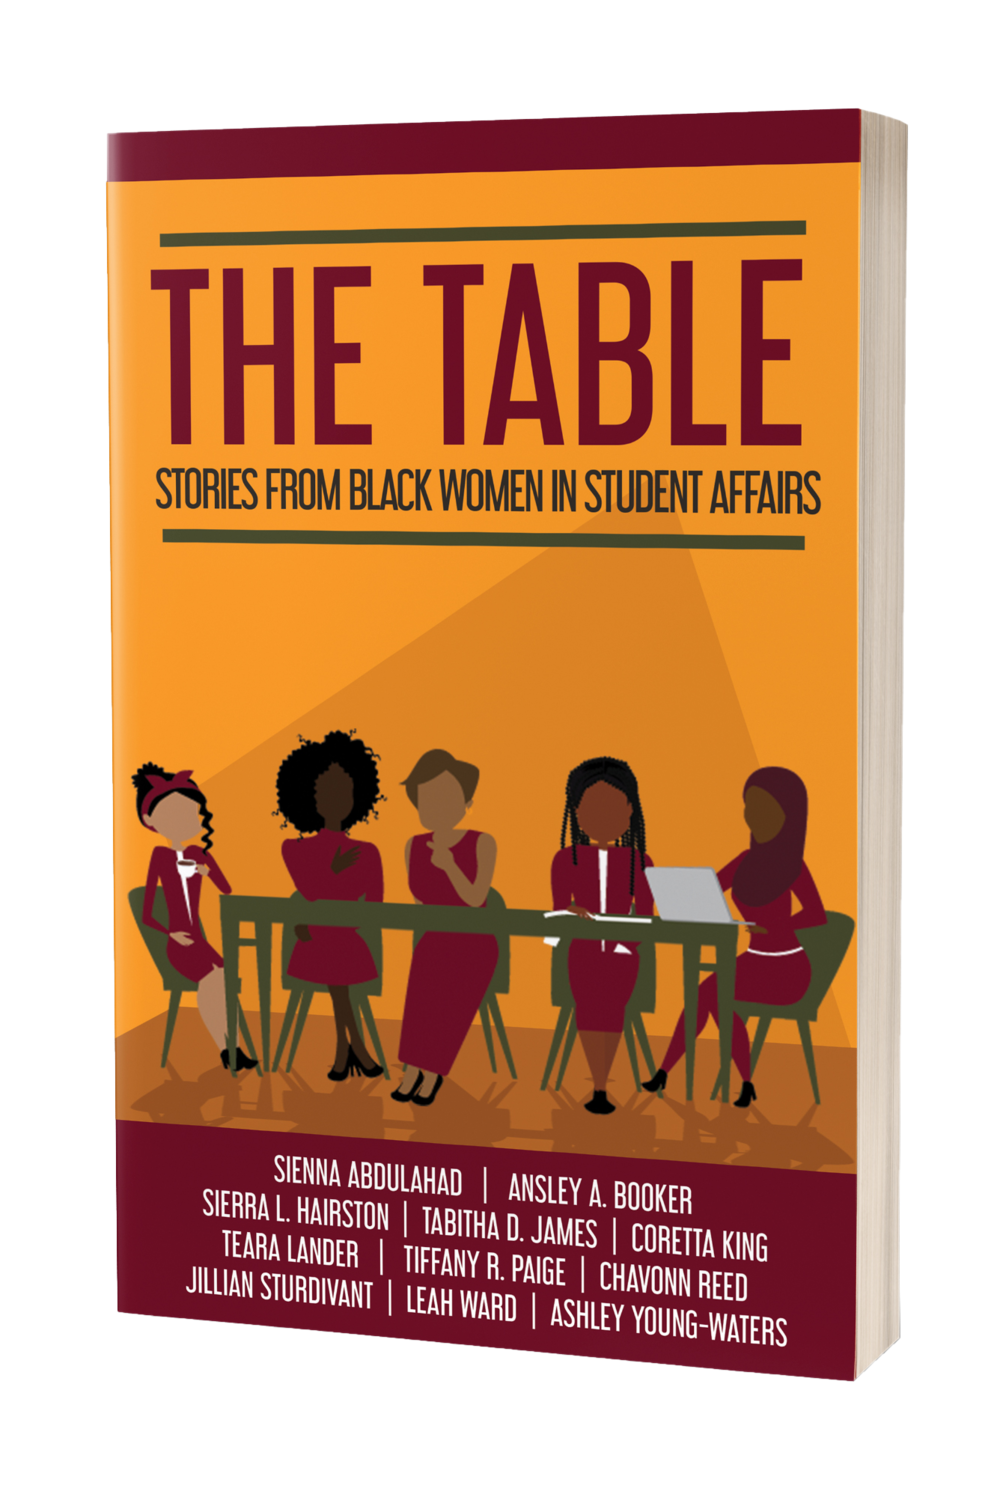 About The Table - Black women work twice as hard to have a seat at the infamous table. The table that once we have a seat at, we are told to be grateful for or else we could lose it—back to the kitchen, preparing meals that we may never have the pleasure of sitting down and enjoying. We are given no plate. No utensils. No napkin to clean up those accidental spills.Instead of waiting for a seat at a table where we would have to compromise our stories or have them told by those who have not walked our paths, we decided to build our own table and invited some of our sisters to sit with us and indulge in its spread. This book is an anthology of the various trials and triumphs 11 Black women encountered while working in the student affairs sector of higher education. We are connected by our experiences navigating in spaces where we have sometimes felt disempowered, but we have learned the trade of maneuvering in a professional environment, and world, dominated by White people.This is just the beginning. We will be adding more chairs, assembling more tables and inviting others in our communities to have a seat where they'd like. No more unfulfilled appetites and unseasoned dishes. No more scrapes from biting our tongues. At this table, we define spaces. We center conversations. We invite fellowship. We serve you food for your soul and truth elixir for your thirst.Sierra Hairston and Ashley Young-Waters, Co-founders of The Table Books